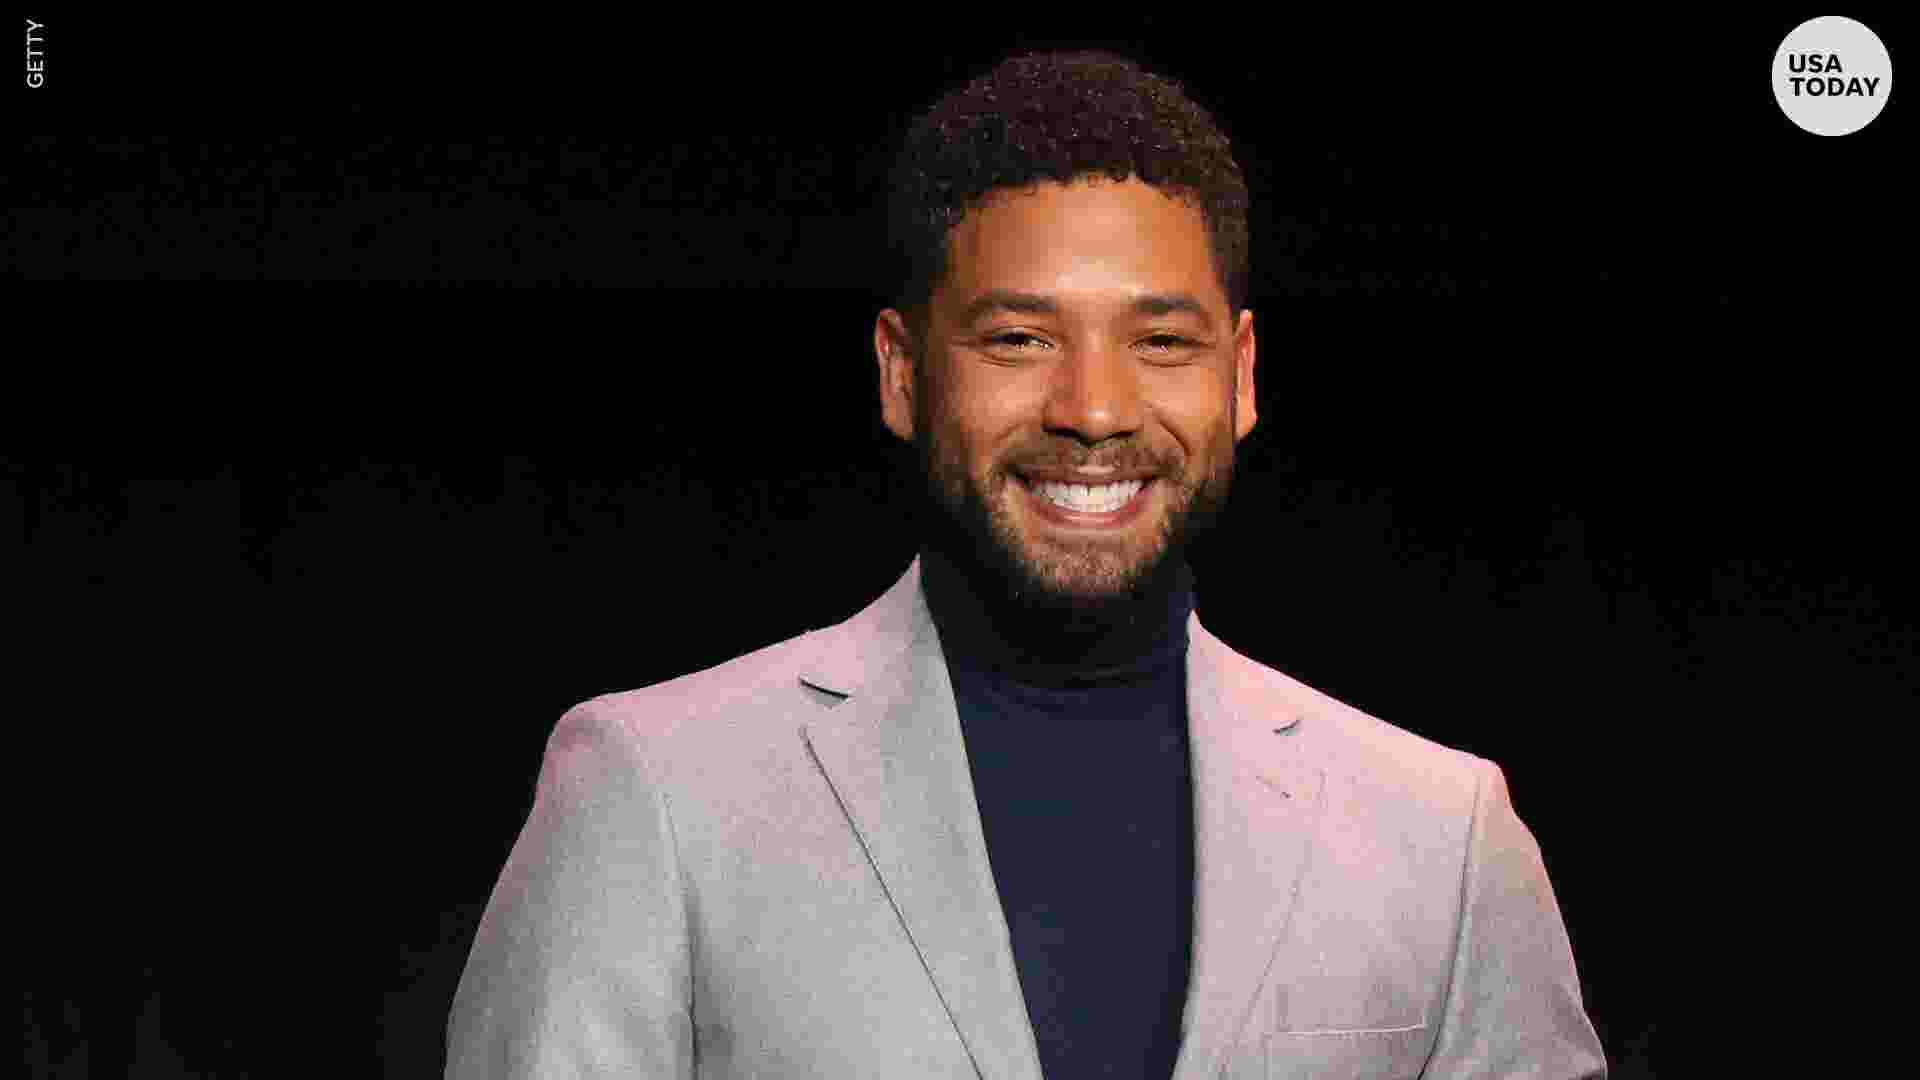 Red Table Talk Don Lemon Texts Jussie Smollett Every Day Now